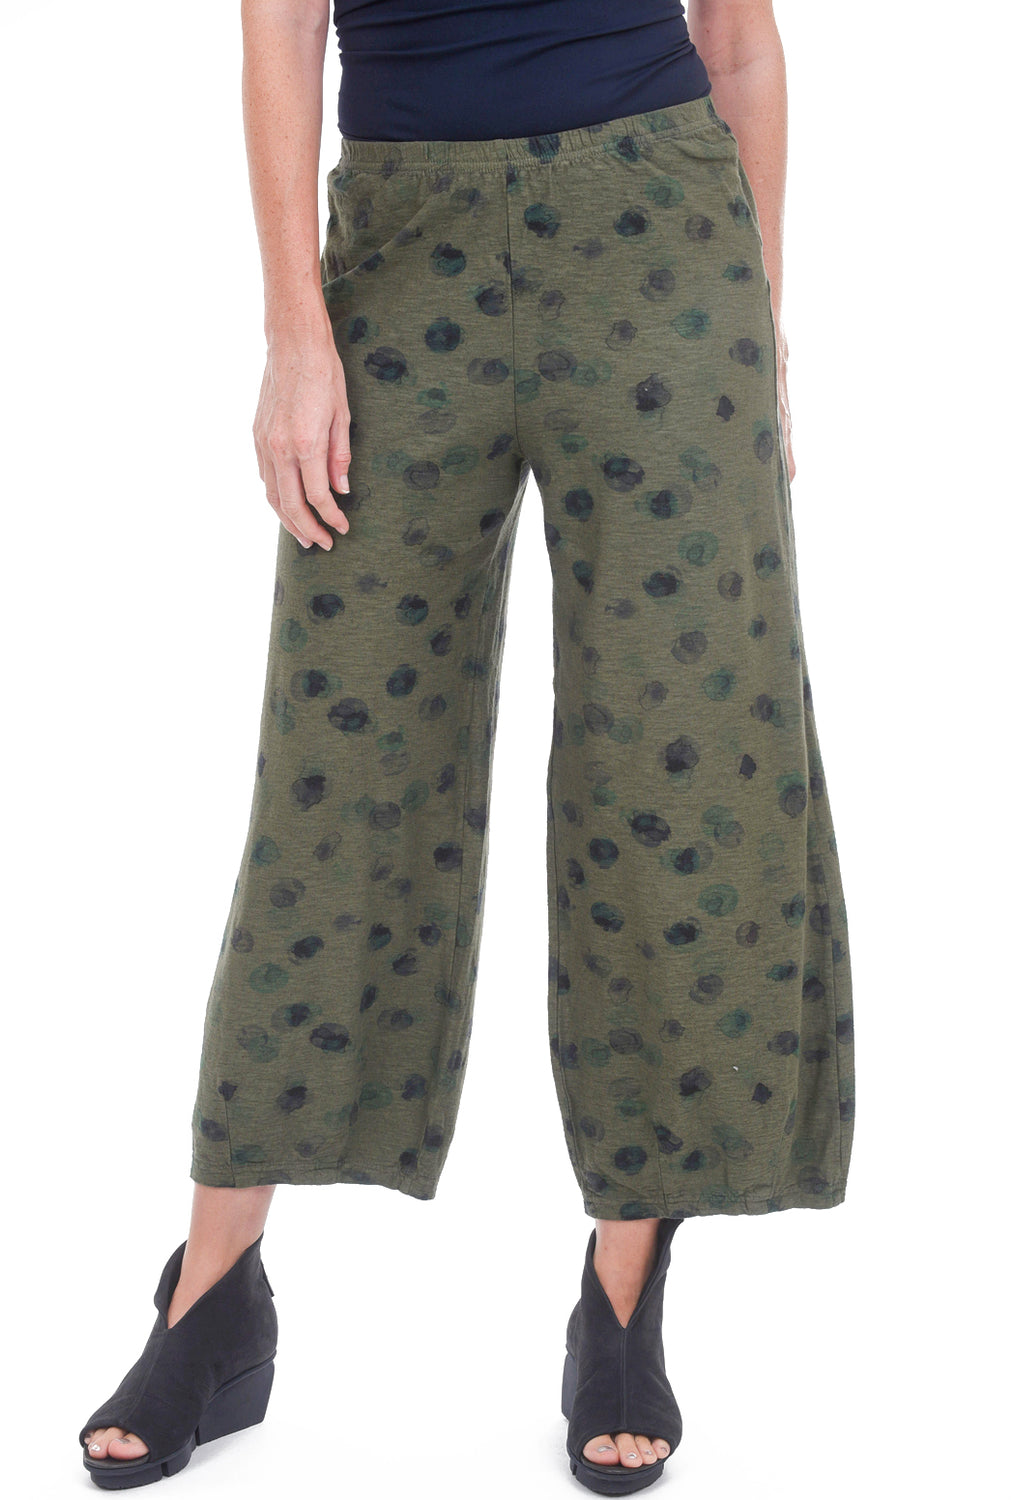 Cut Loose Ink Spot Cropped Jersey Pant, Gris